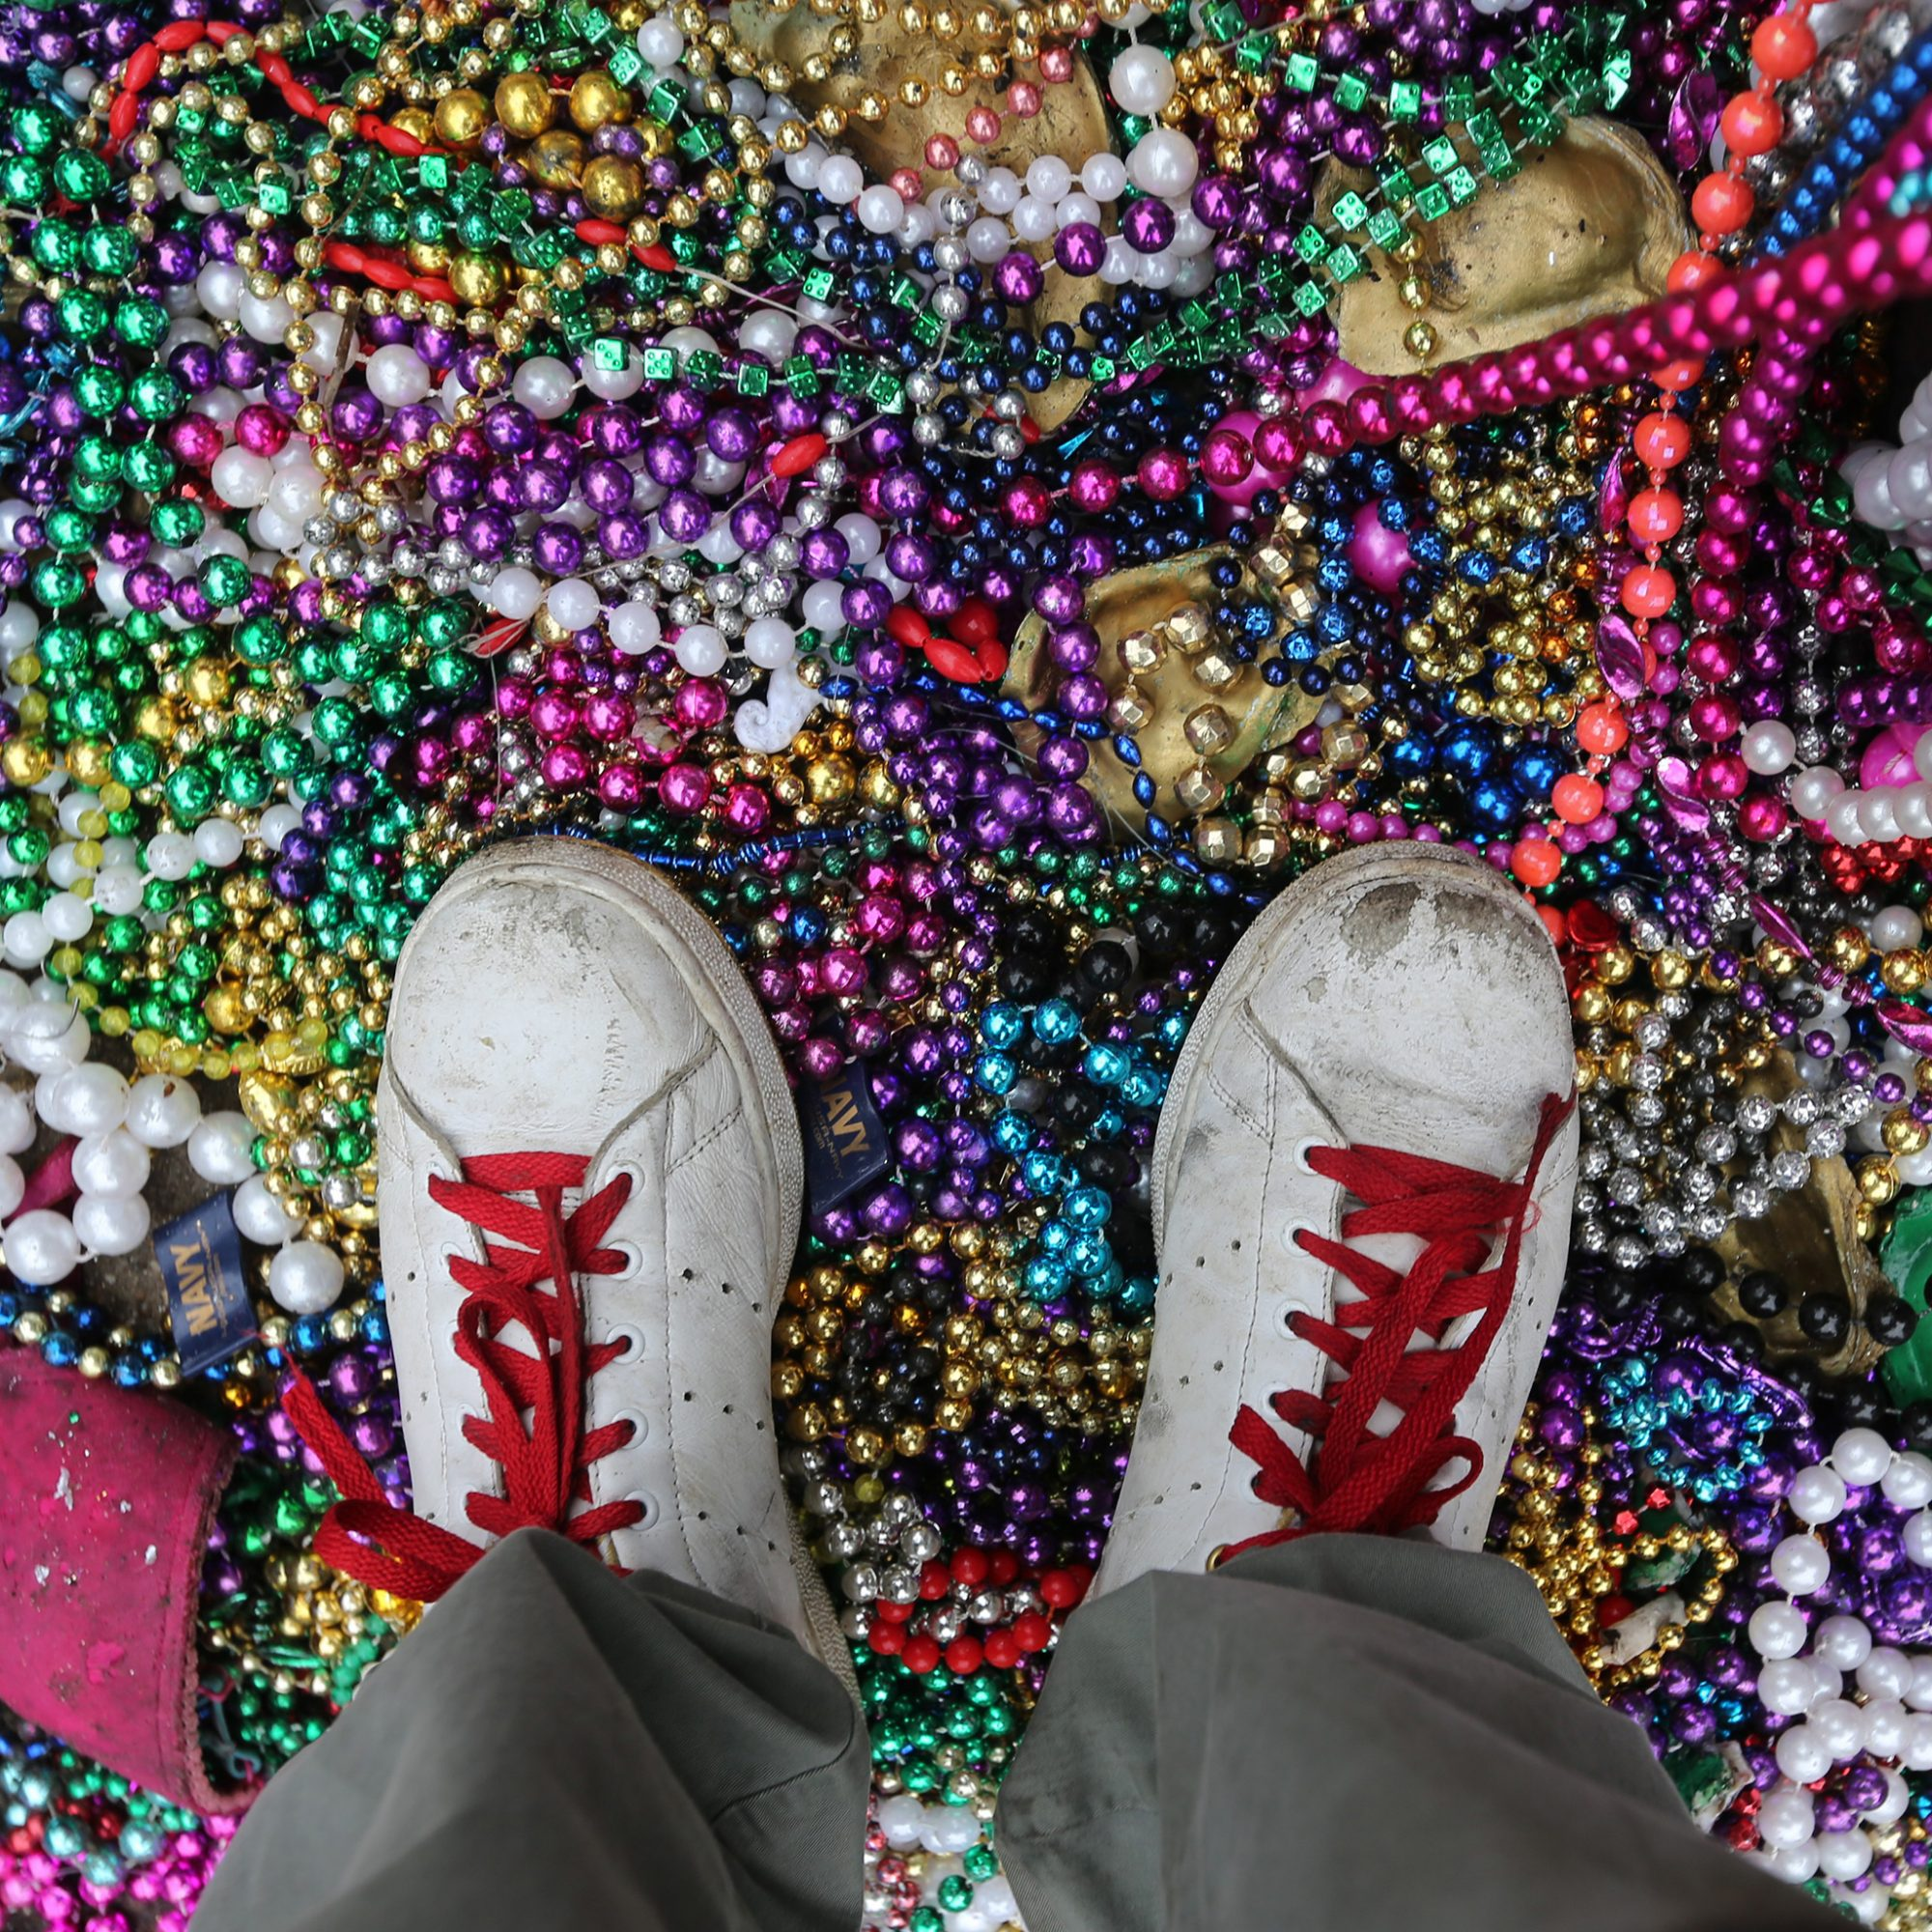 5 Reasons to Expose Yourself on Mardi Gras That Don't Involve Beads